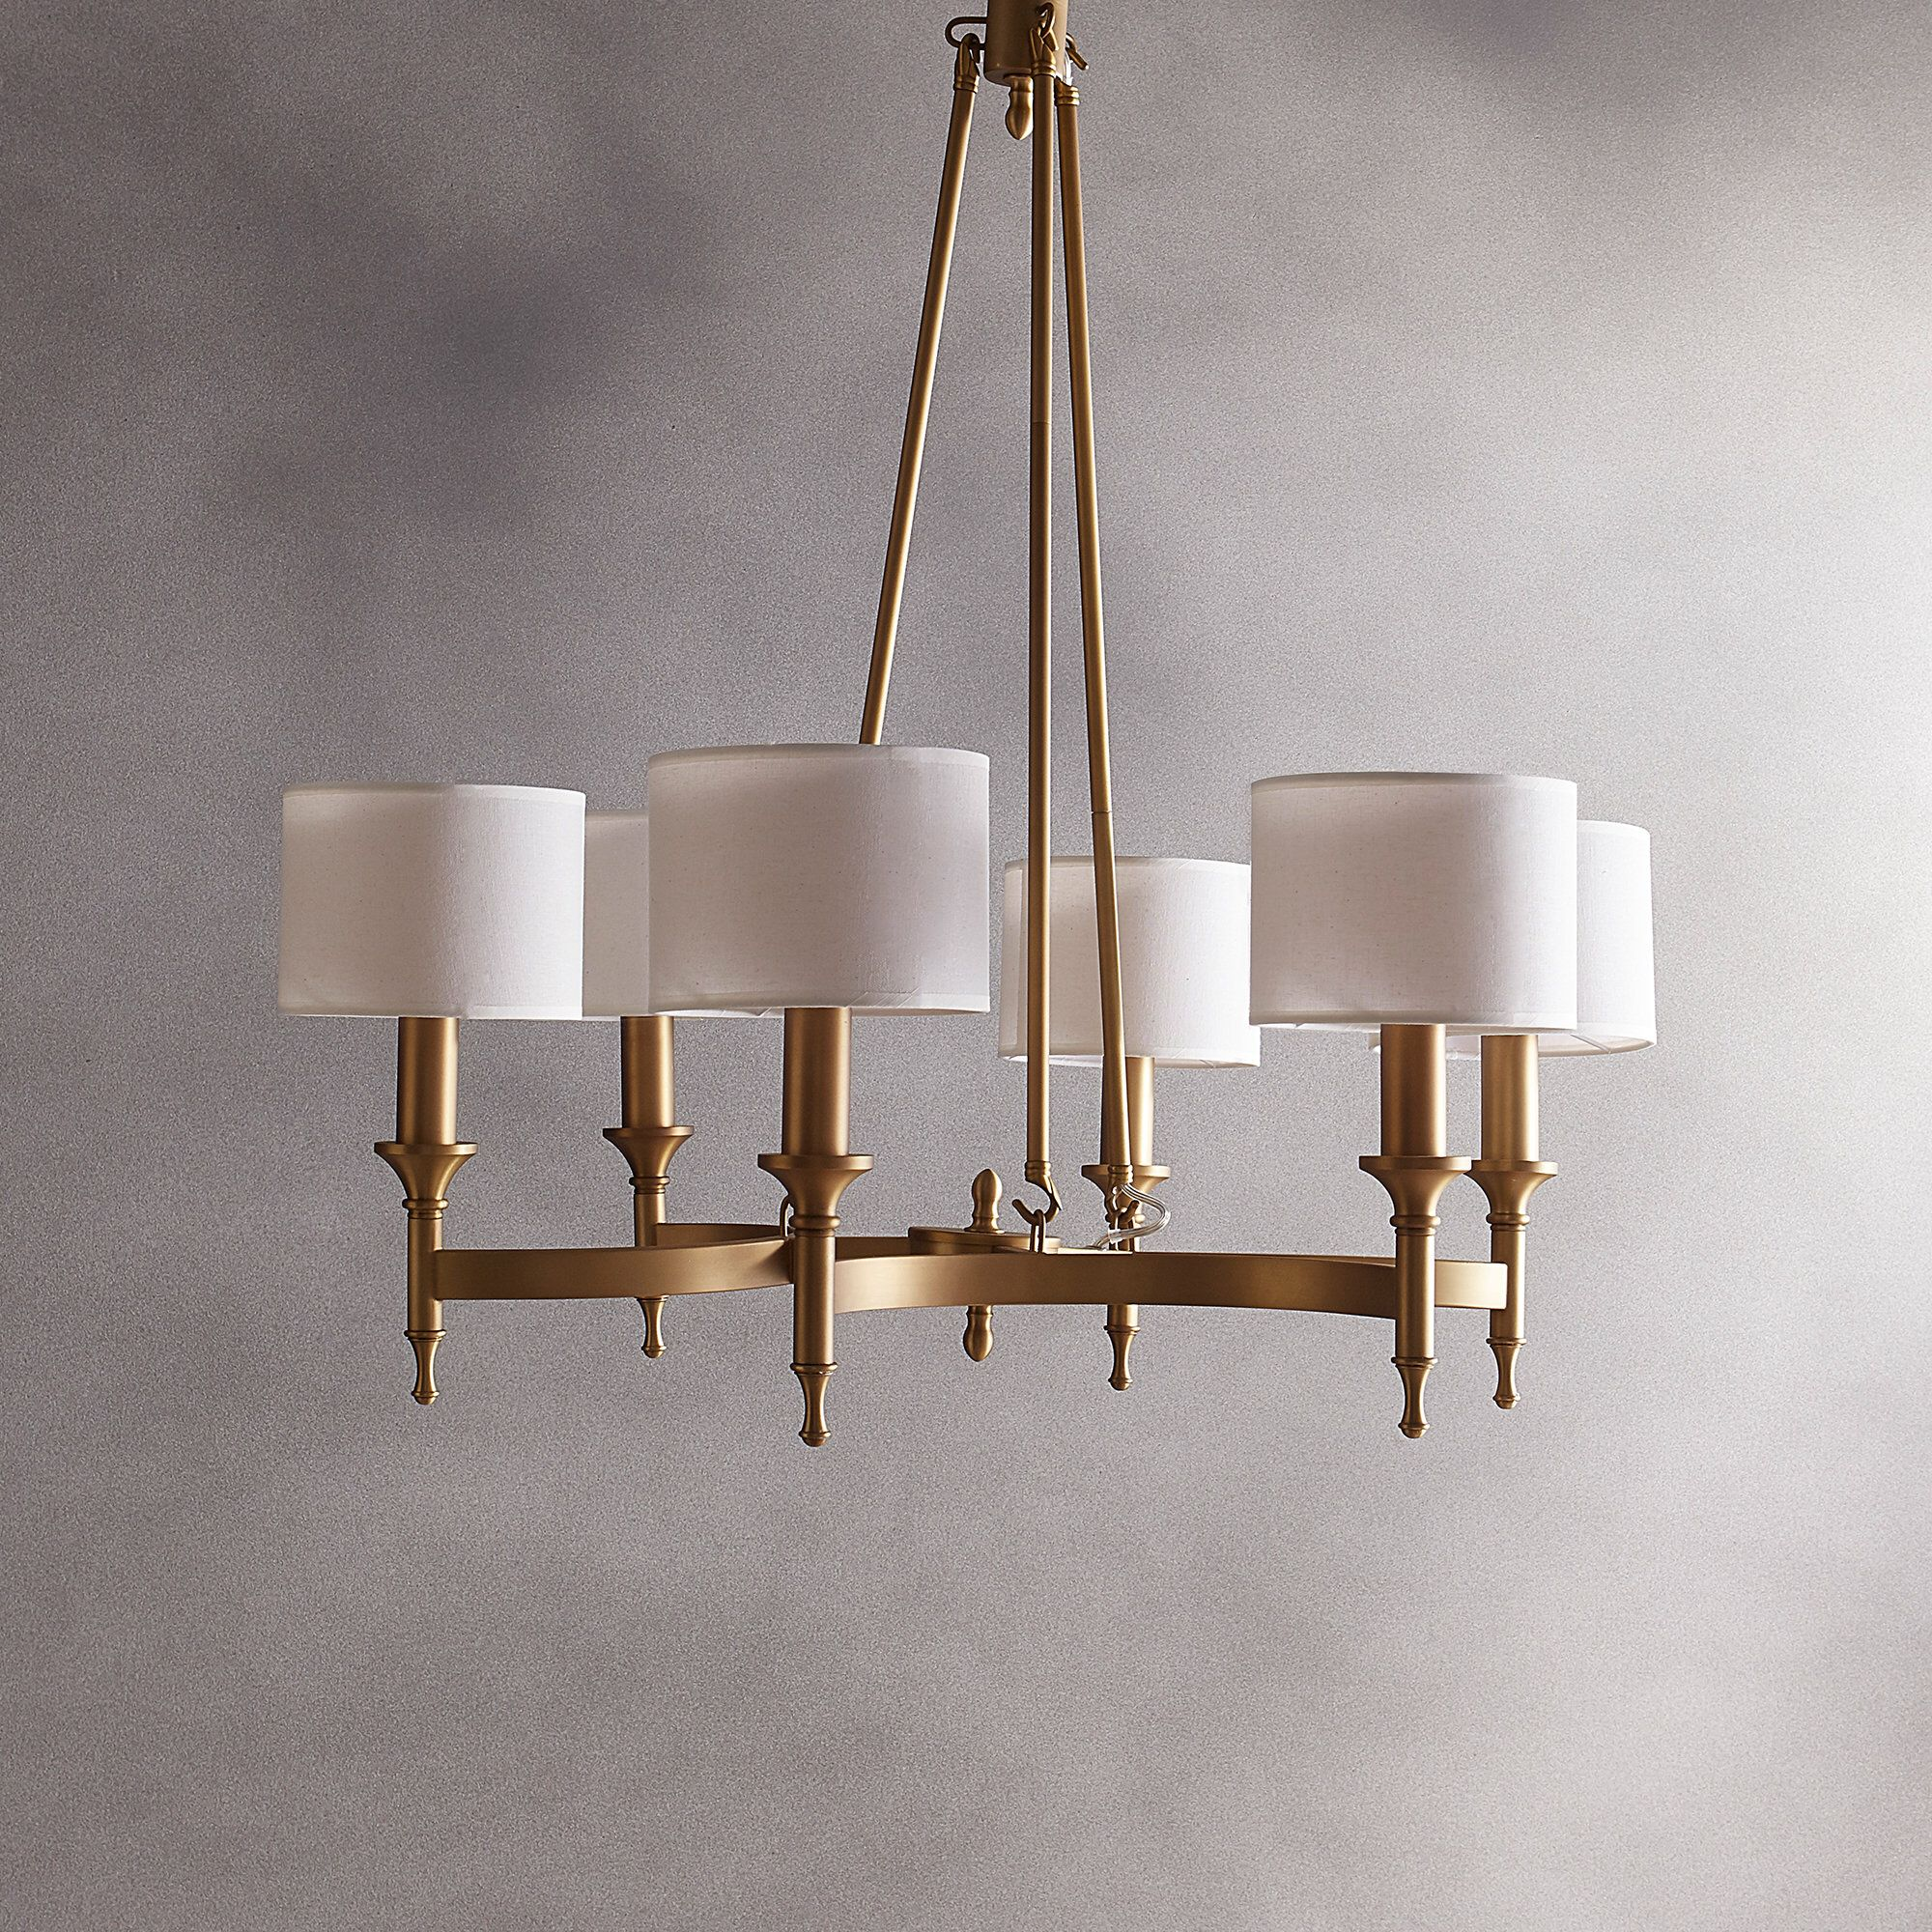 Rudolph 6 Light Shaded Chandelier Traditional Chandelier Chandelier Shades Dining Room Chandelier